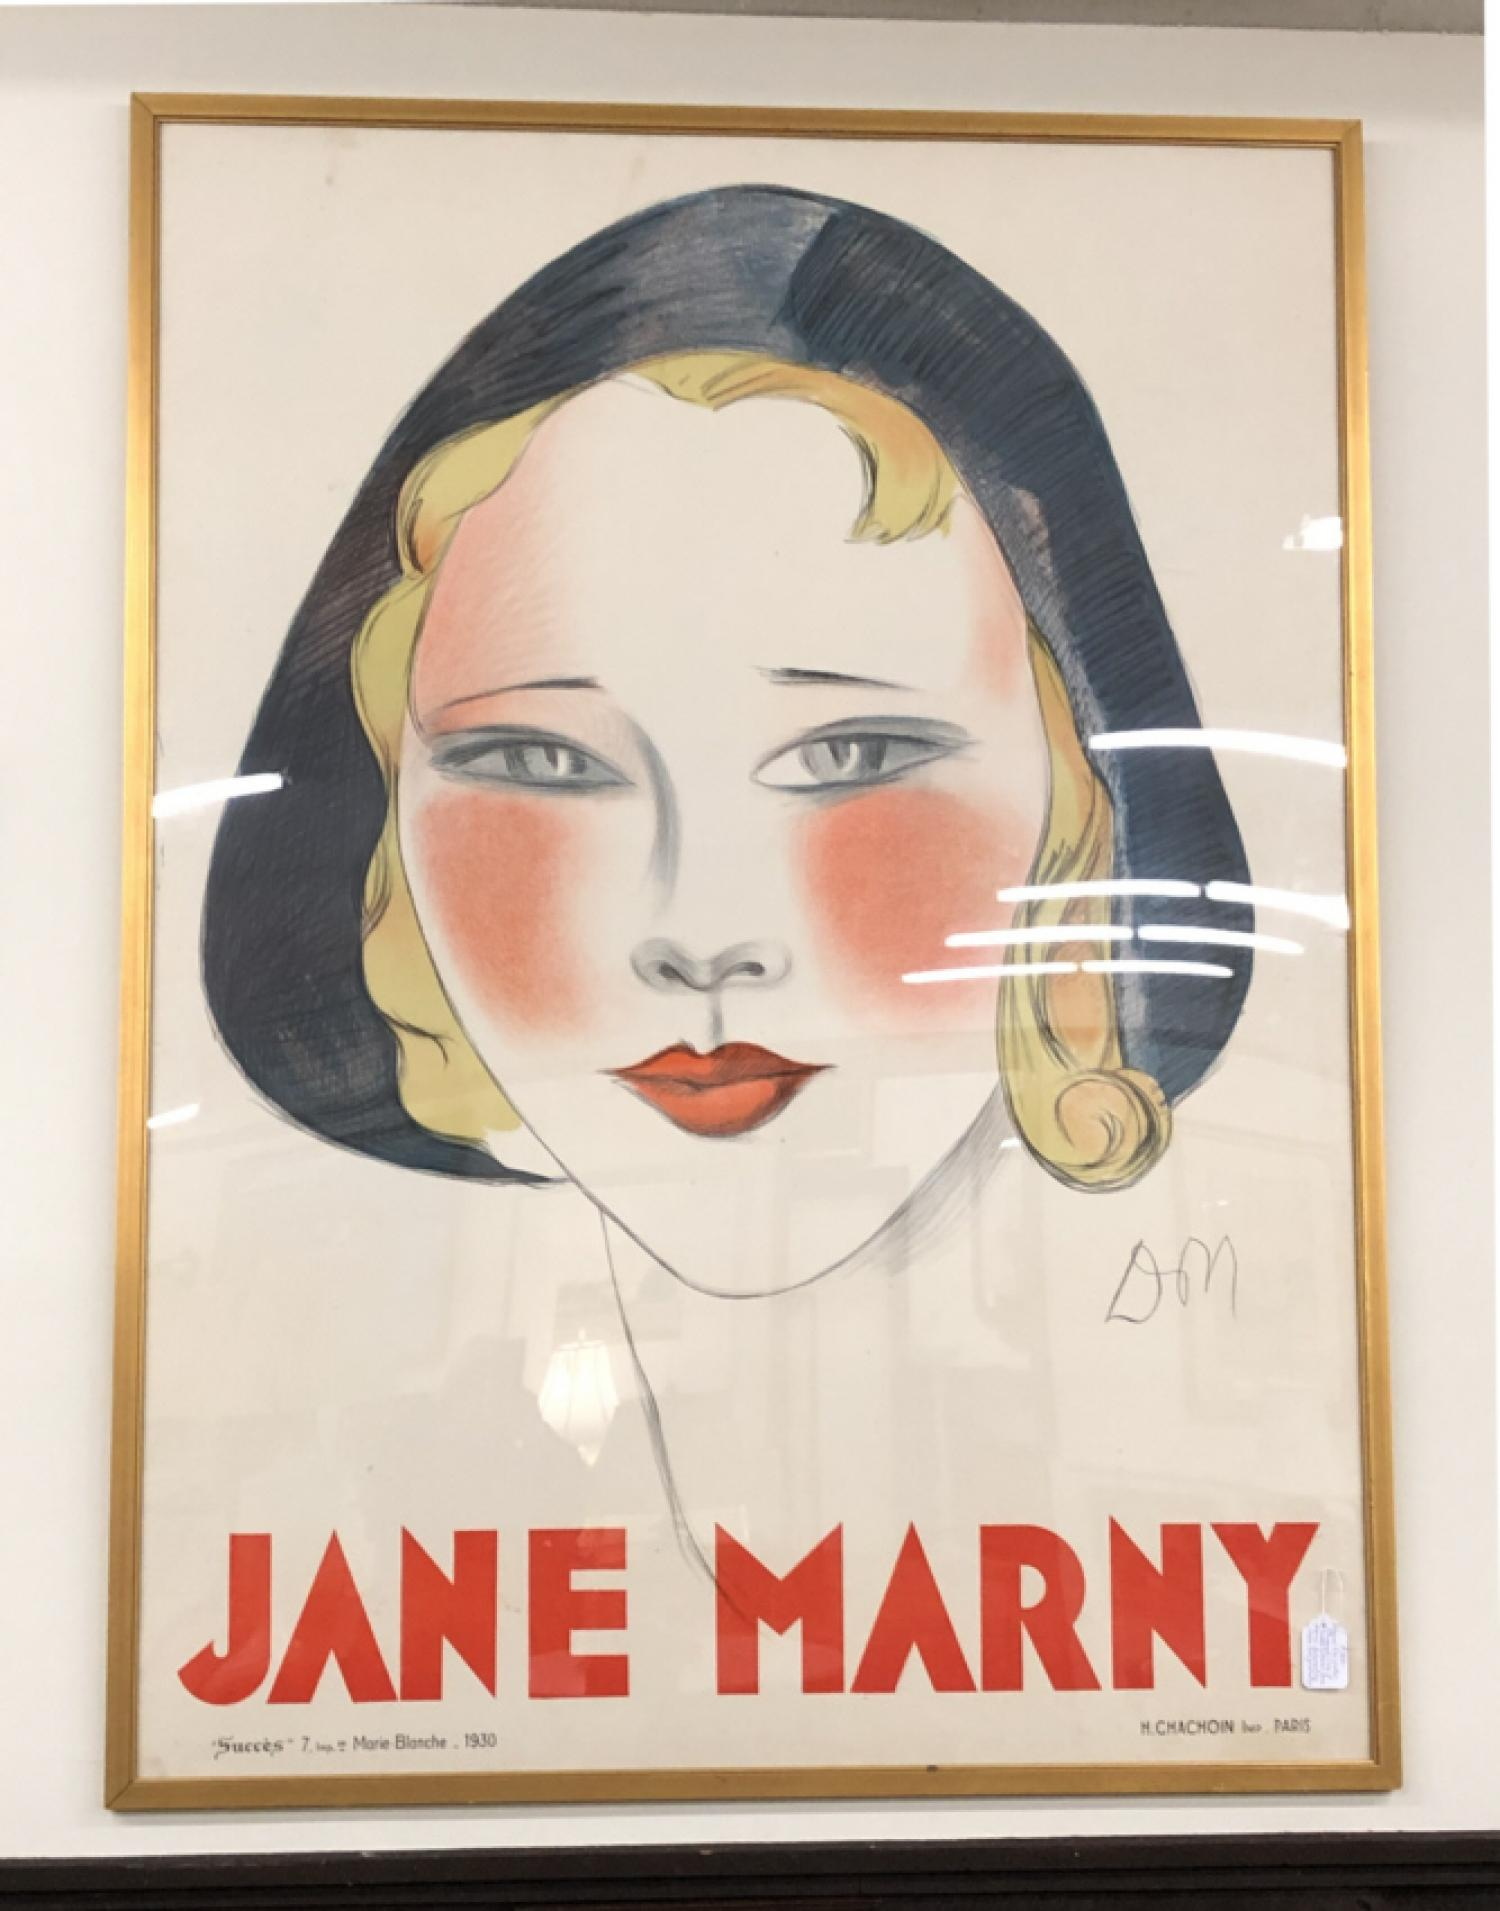 French film poster of Jane Marny circa 1930